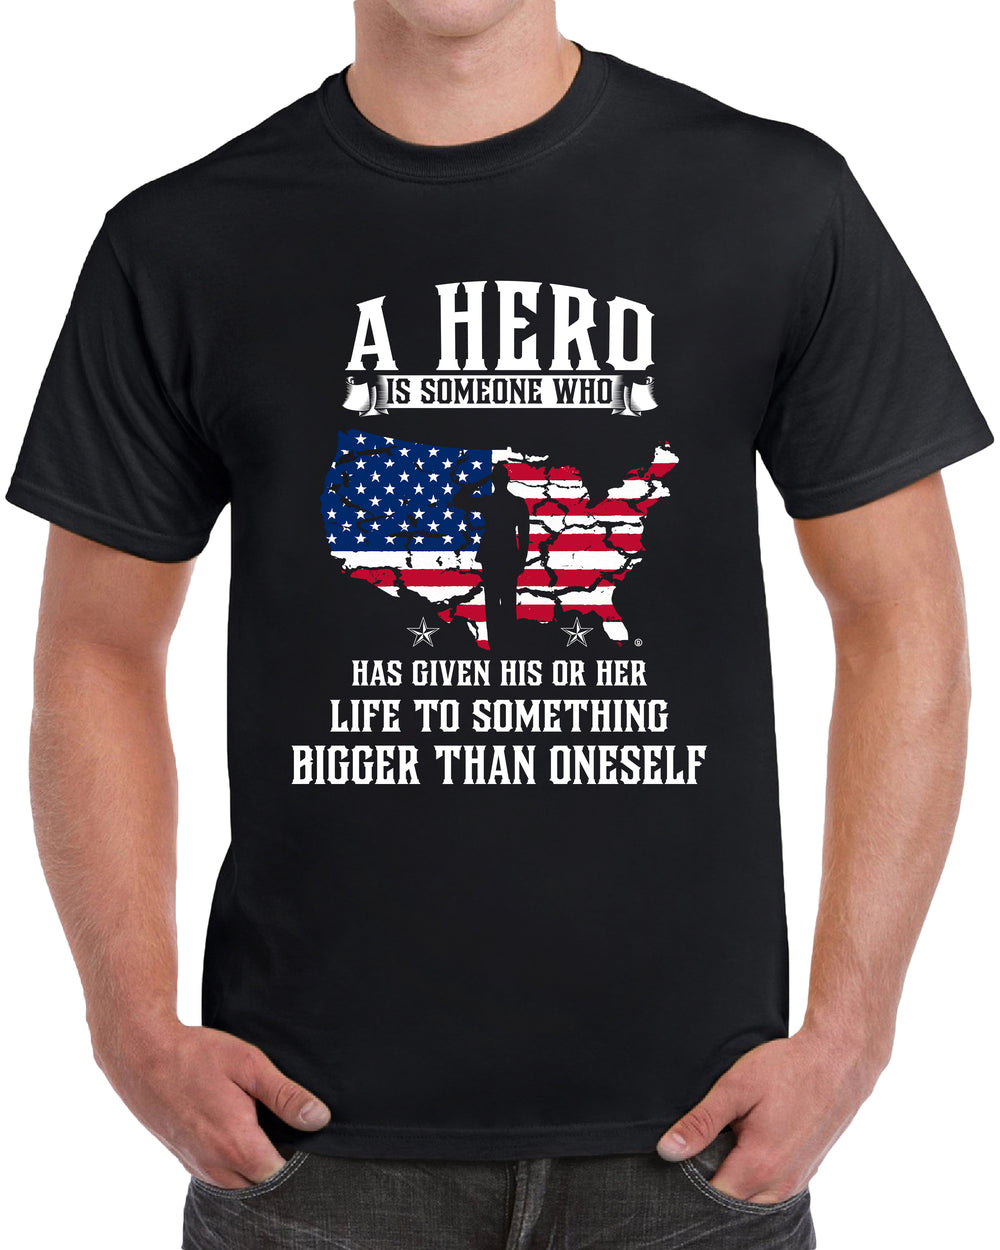 A Hero Is Someone Who Has Given His Or Her Life To Something Bigger Than Oneself - BLACK